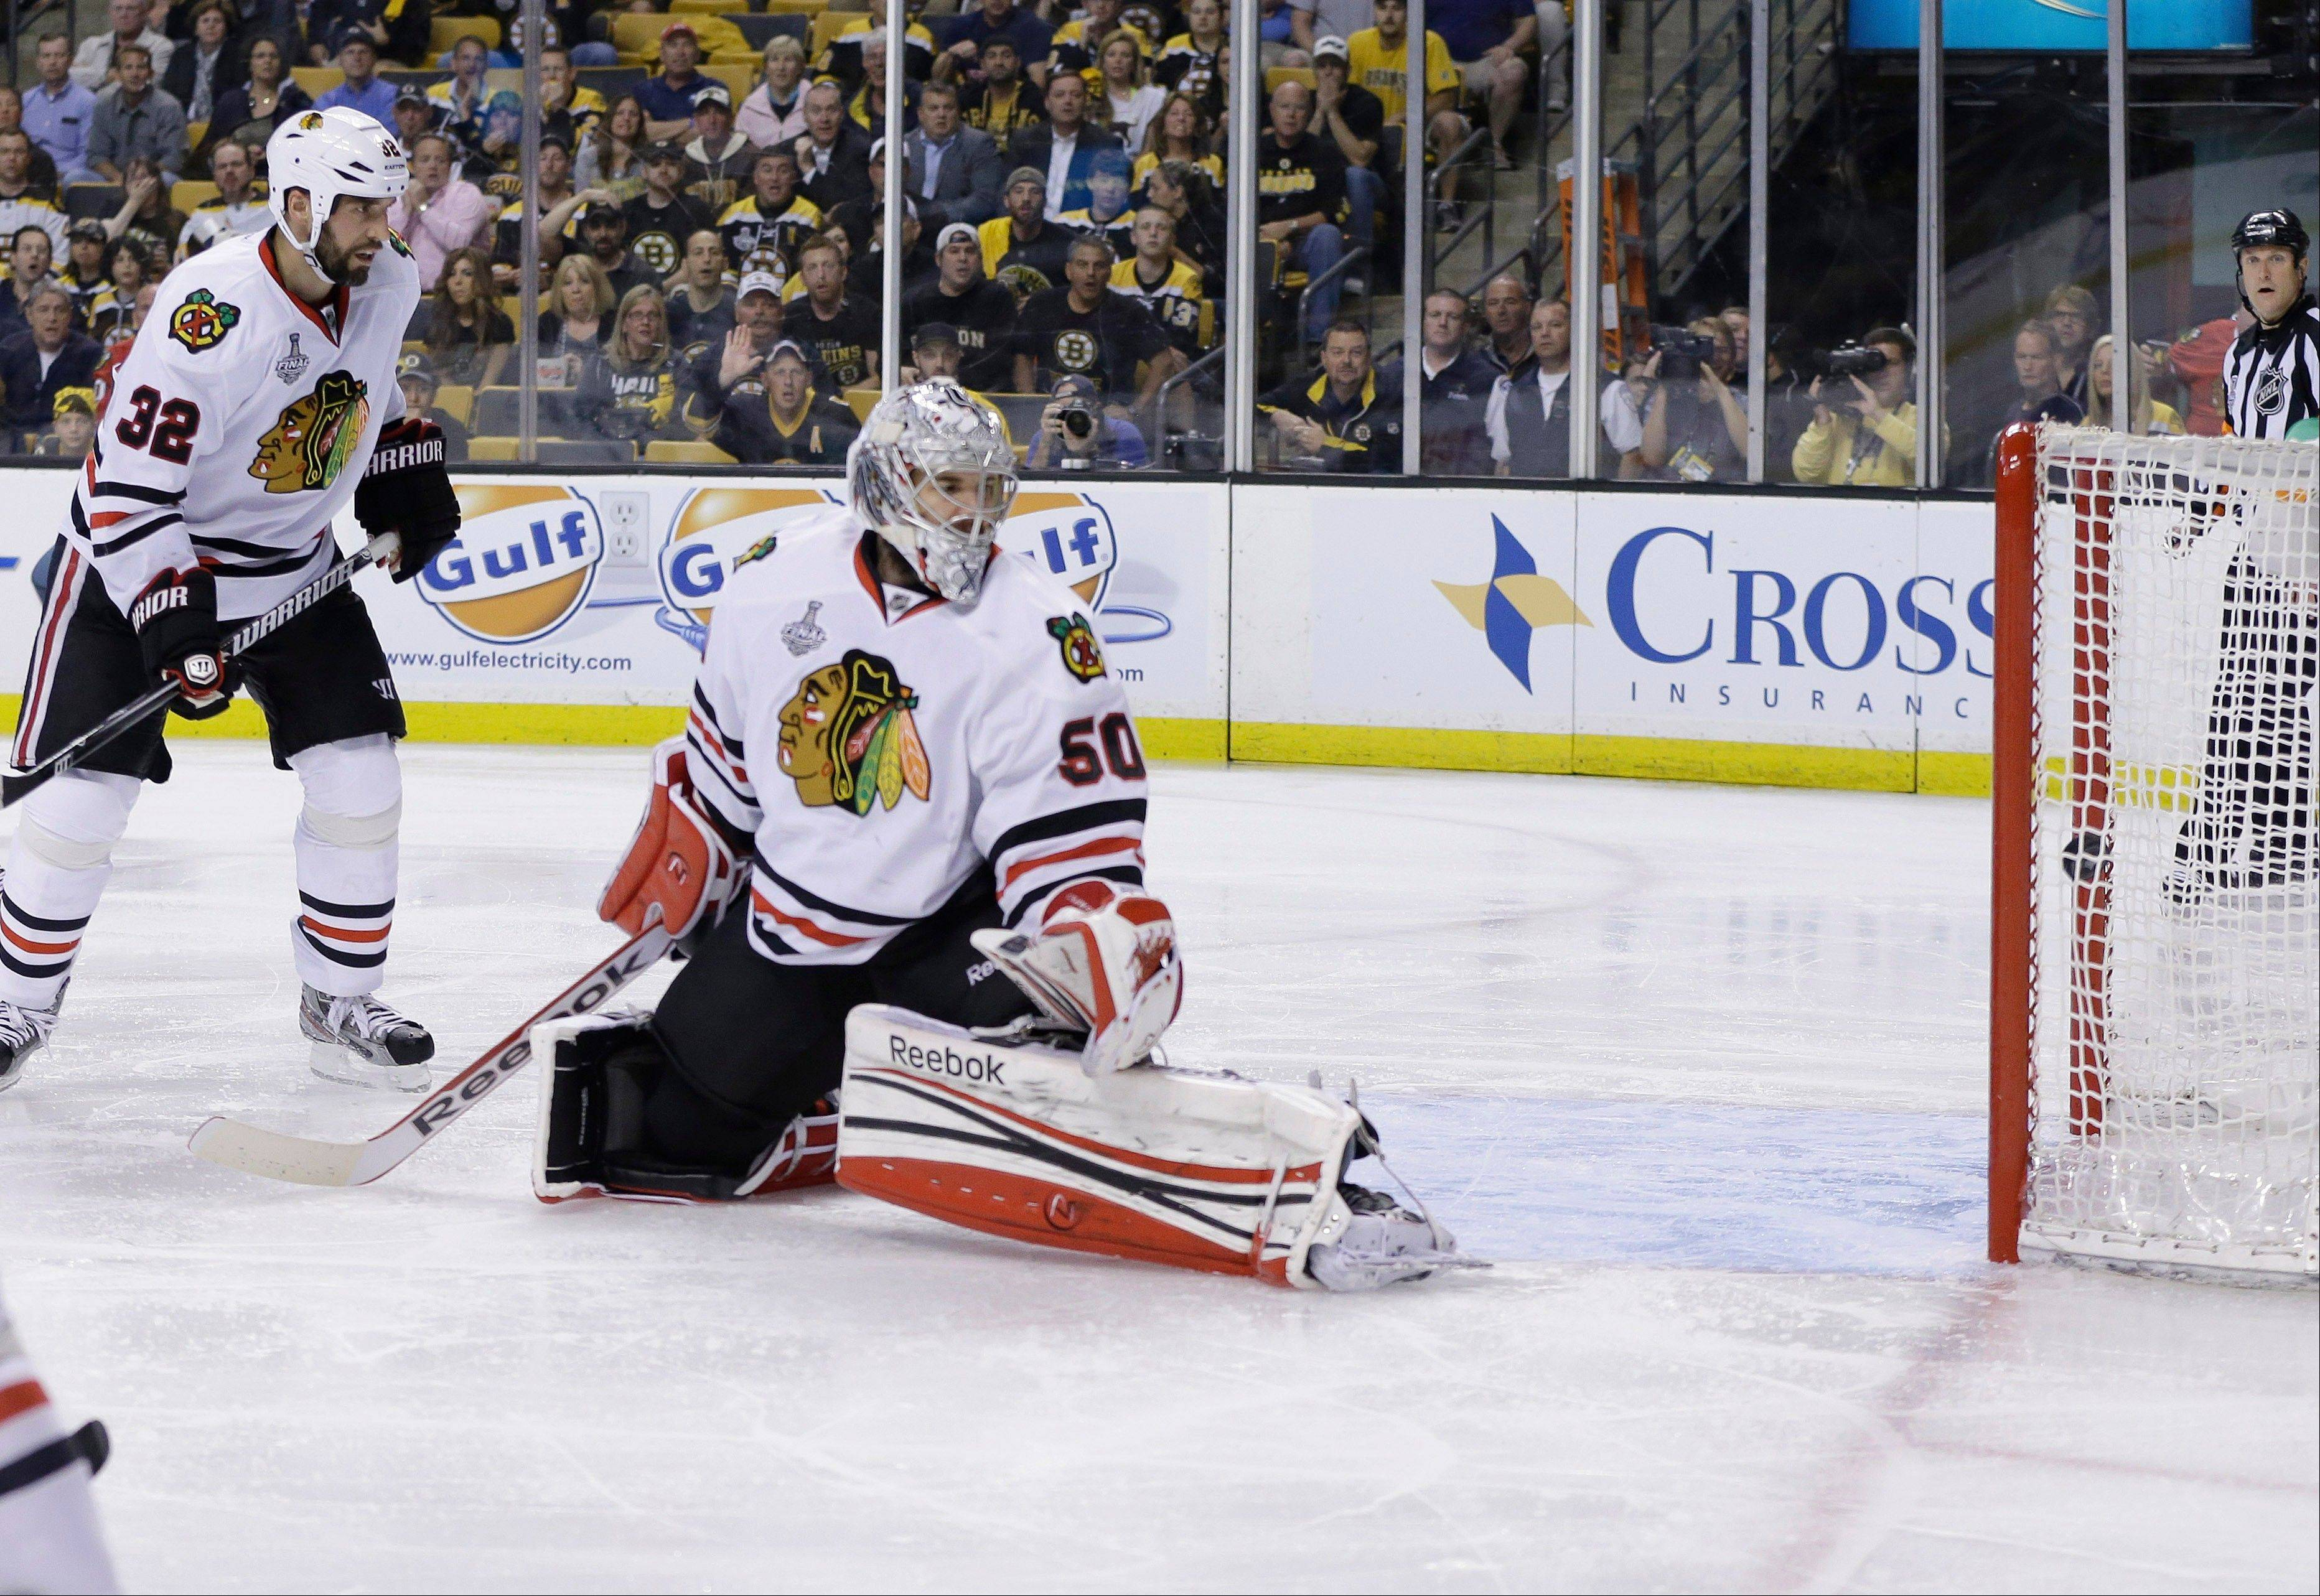 The puck from Boston Bruins' Daniel Paille, not seen, settles into the net past Chicago Blackhawks goalie Corey Crawford (50) and defenseman Michal Rozsival (32), of the Czech Republic, during the second period in Game 3 of the NHL hockey Stanley Cup Finals.